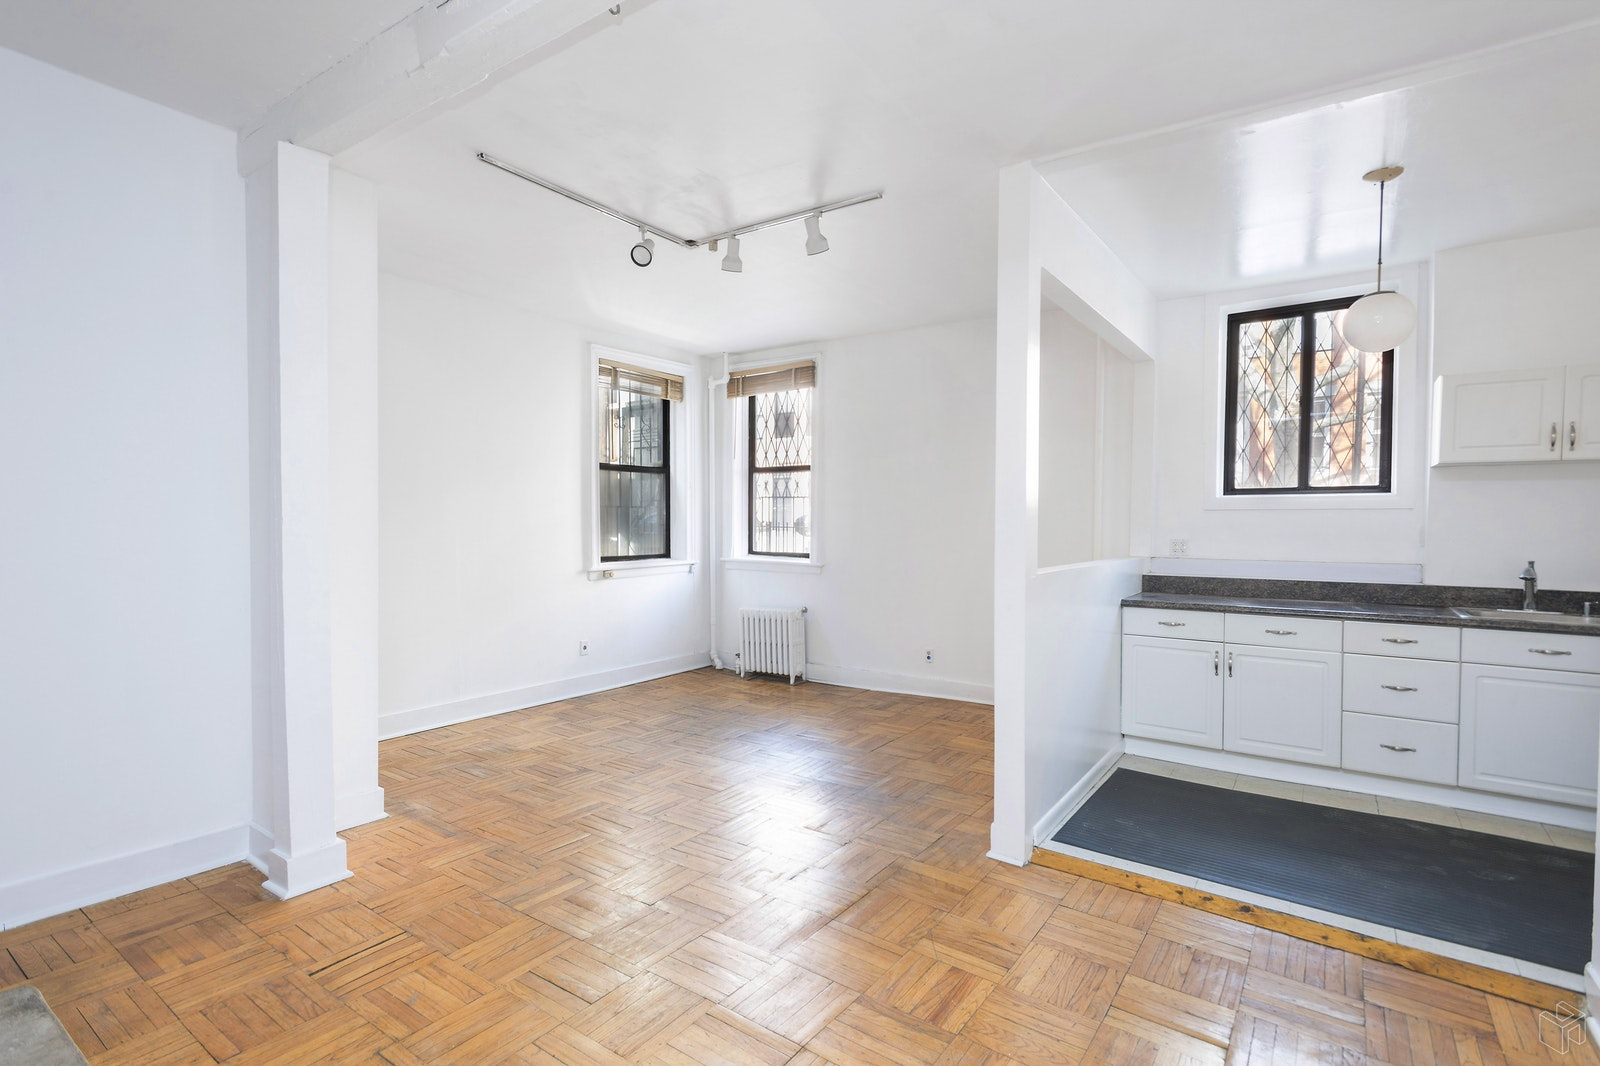 110 Hoyt Street 1, Boerum Hill, Brooklyn, NY, 11217, $875,000, Sold Property, Halstead Real Estate, Photo 1